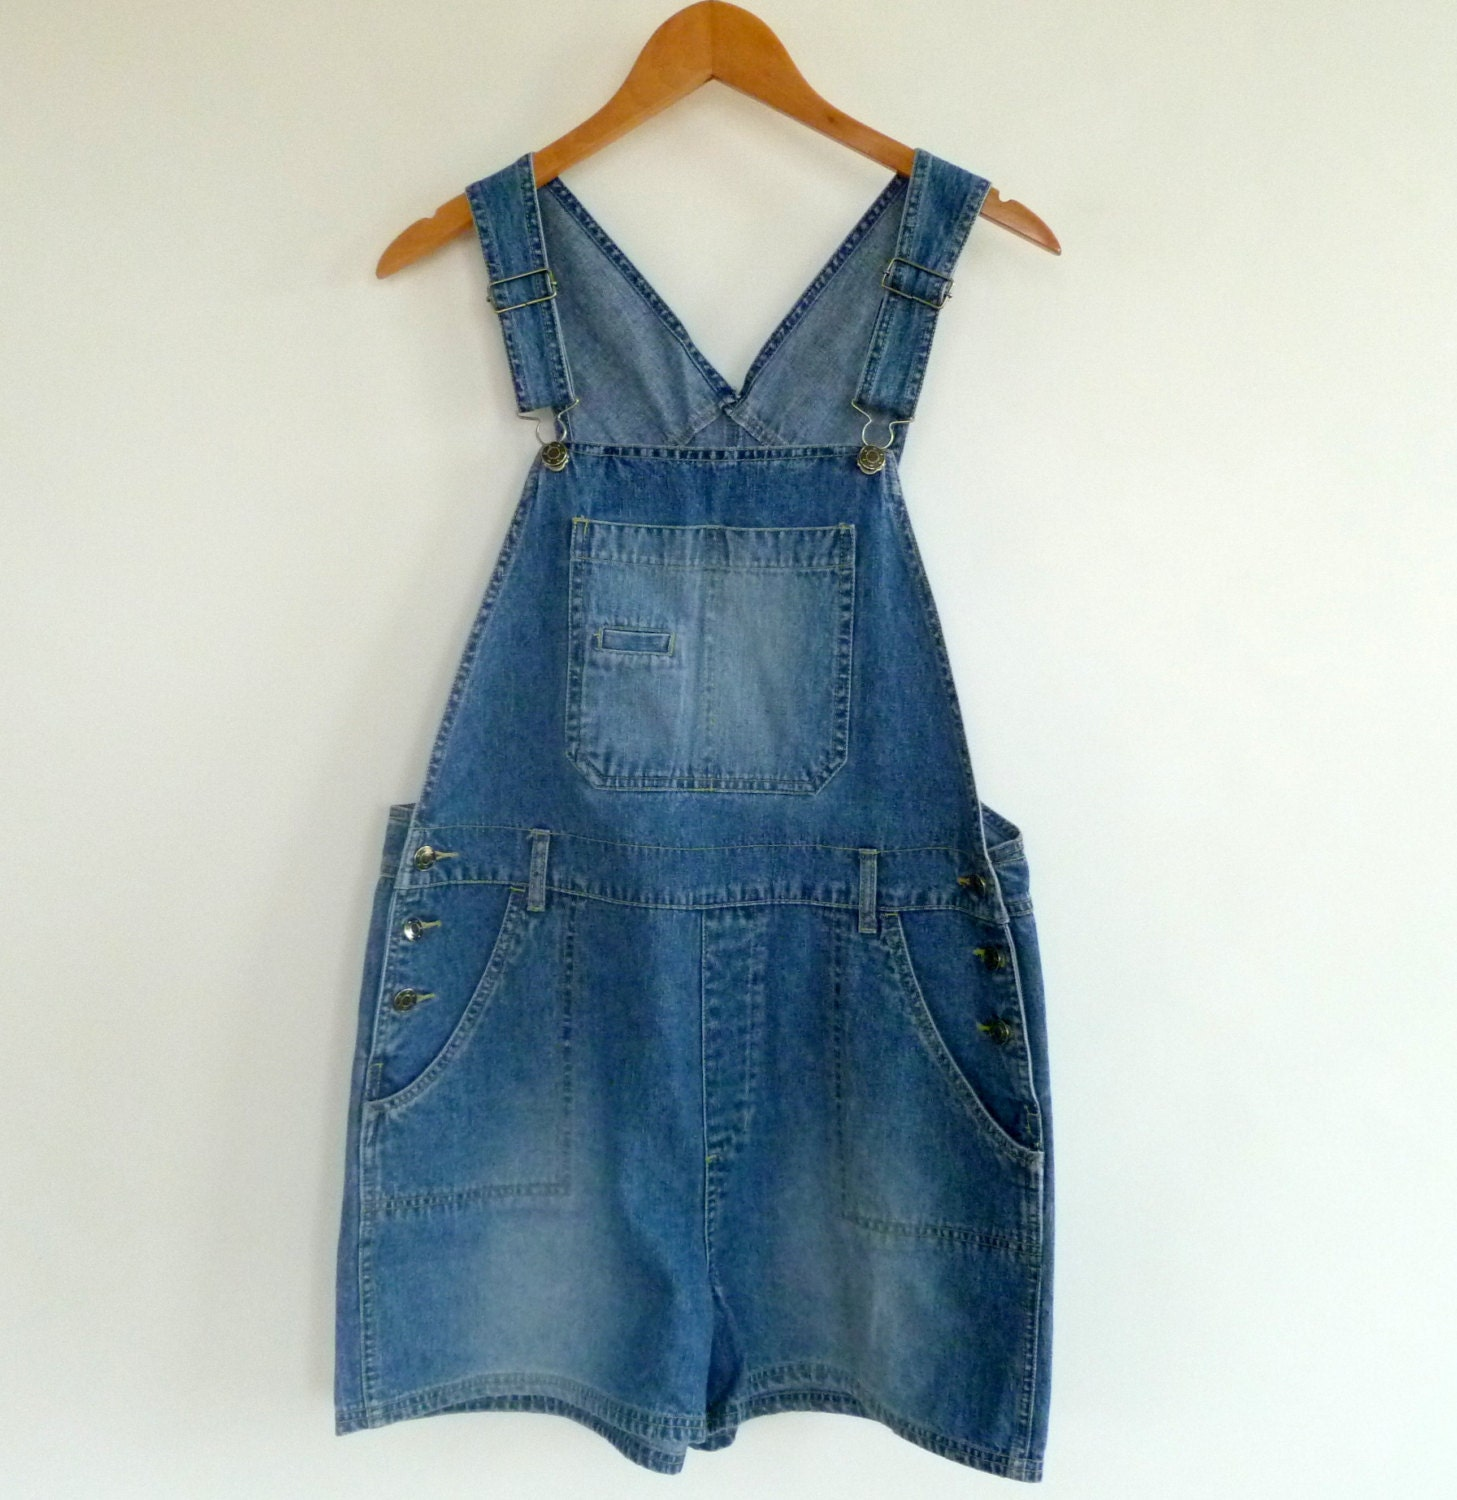 Shop cute overalls and coveralls for women this season. Slim & boyfriend fits, distressed details, cropped ankle & more styles on trend right now. Free Shipping Over $